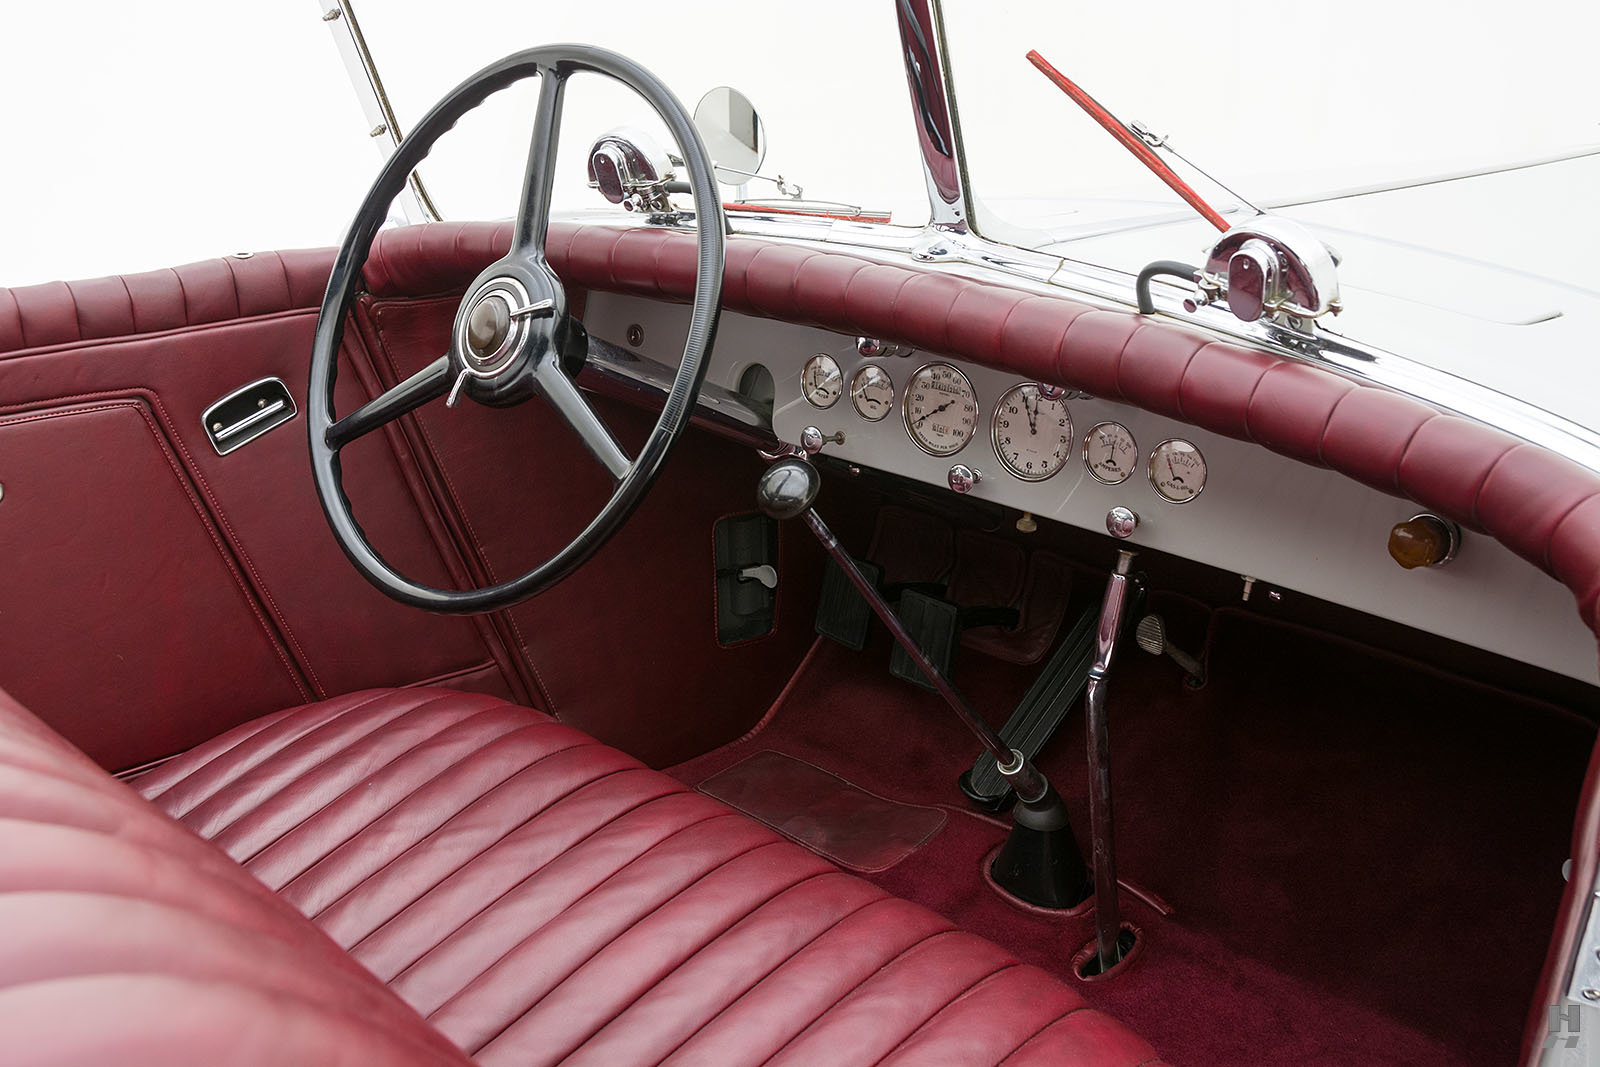 1931 Chrysler CG Imperial Roadster For Sale (picture 5 of 6)